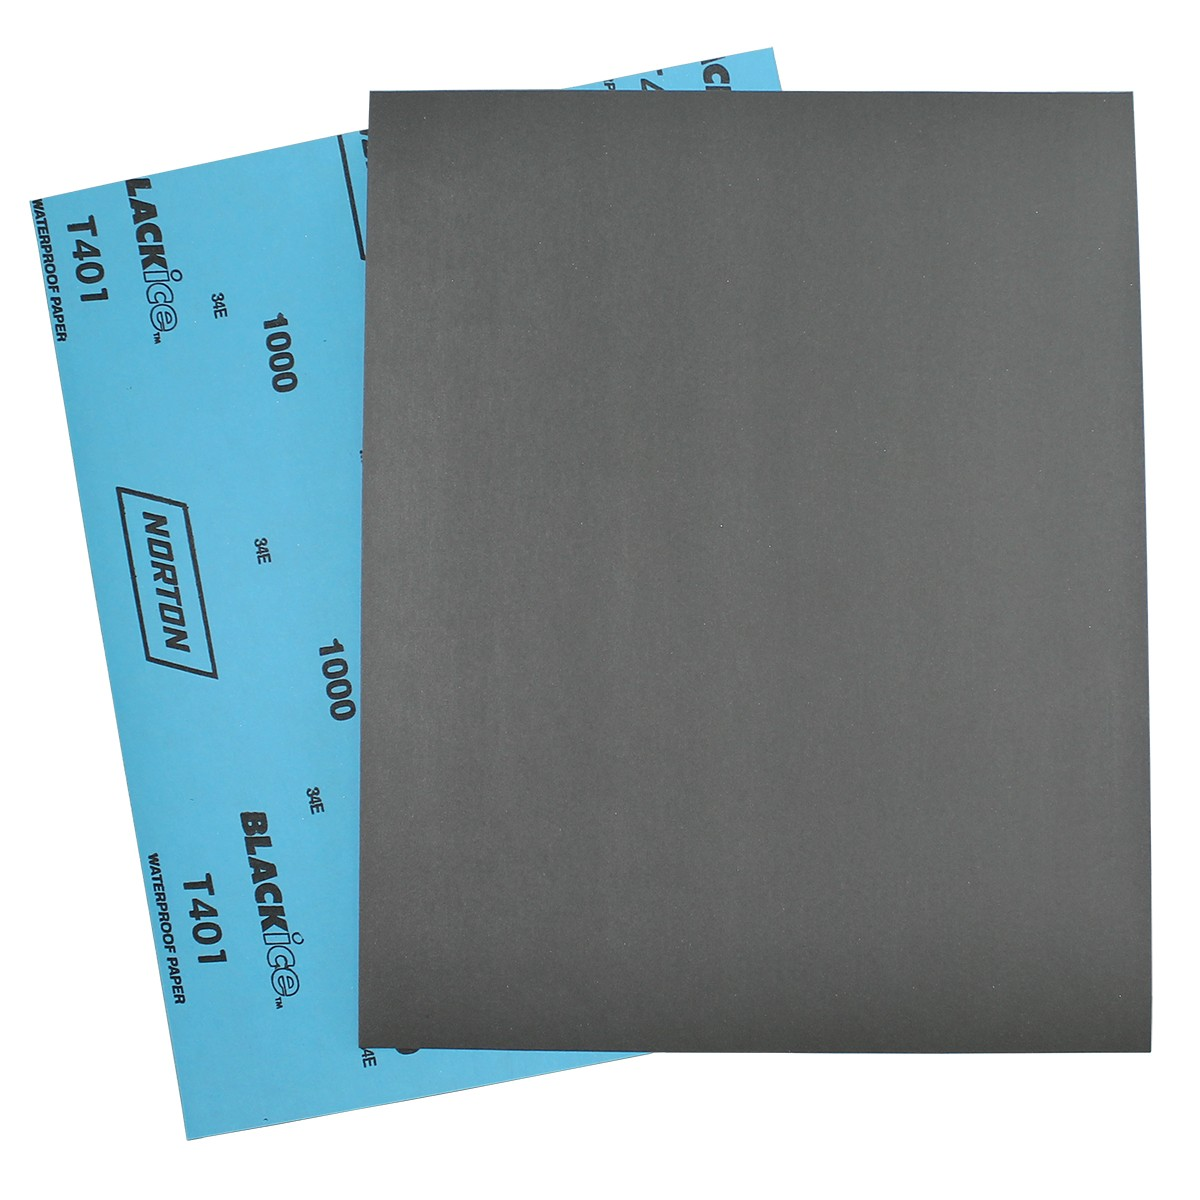 Norton Emery Polishing Paper - 240 Grit